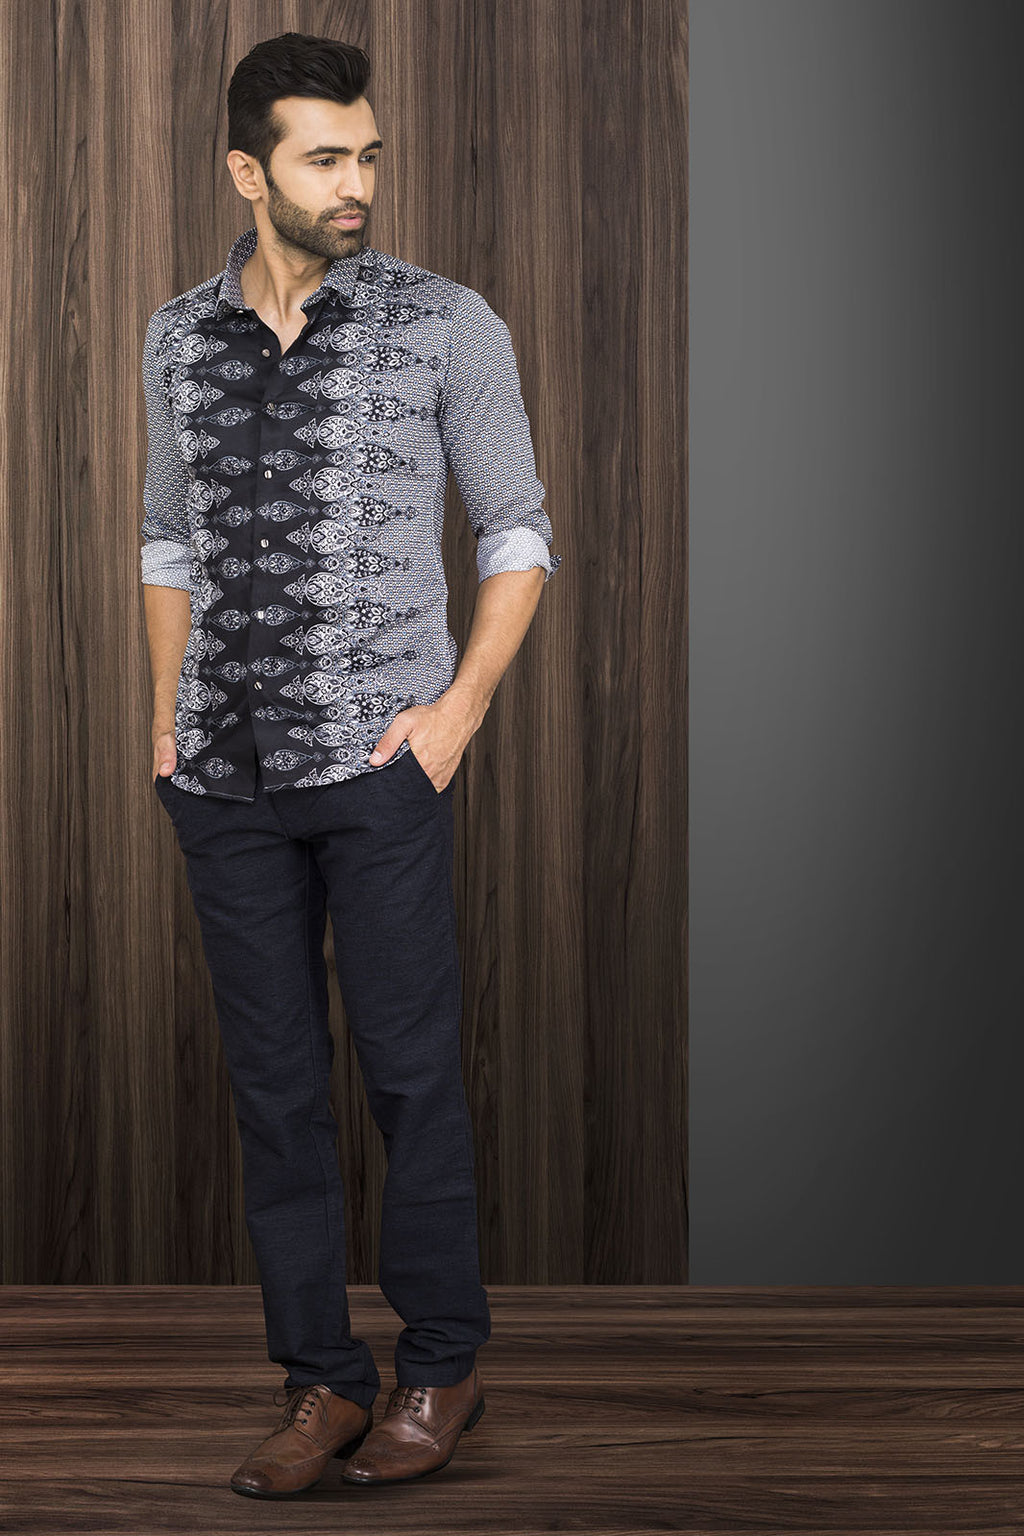 GREY AND BLACK PRINTED PARTY-WEAR SHIRT